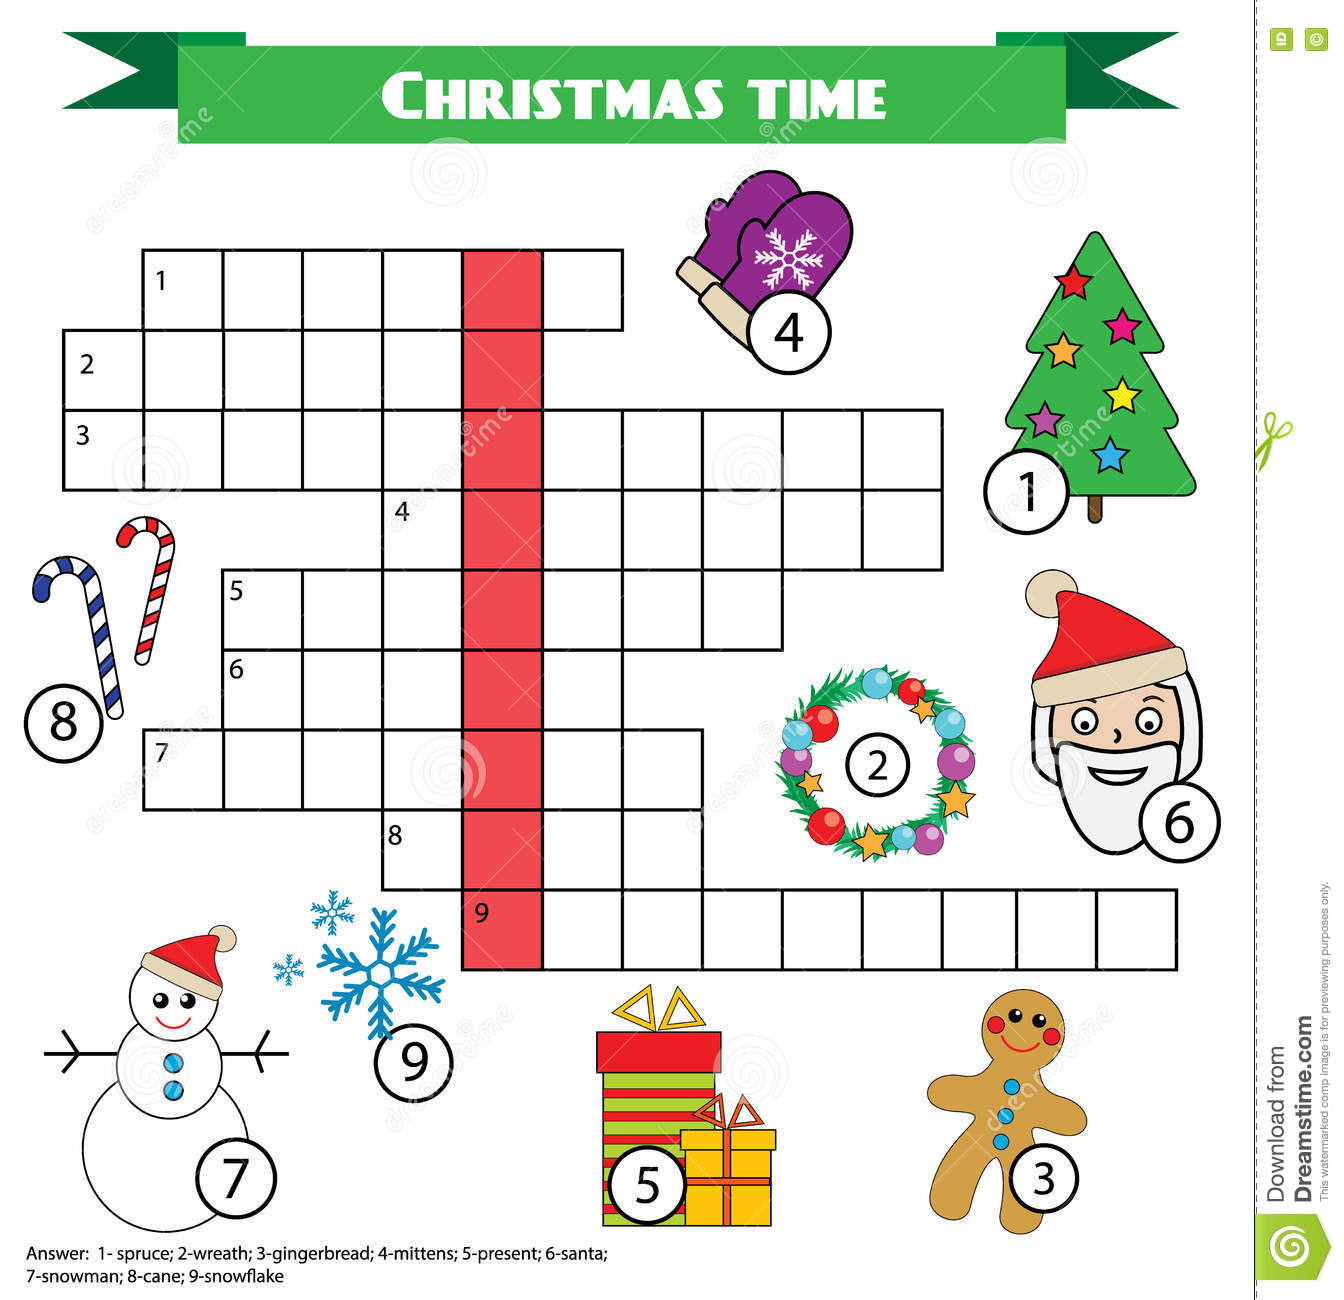 Crossword Educational Children Game With Answer Christmas Winter Theme Stock Vector